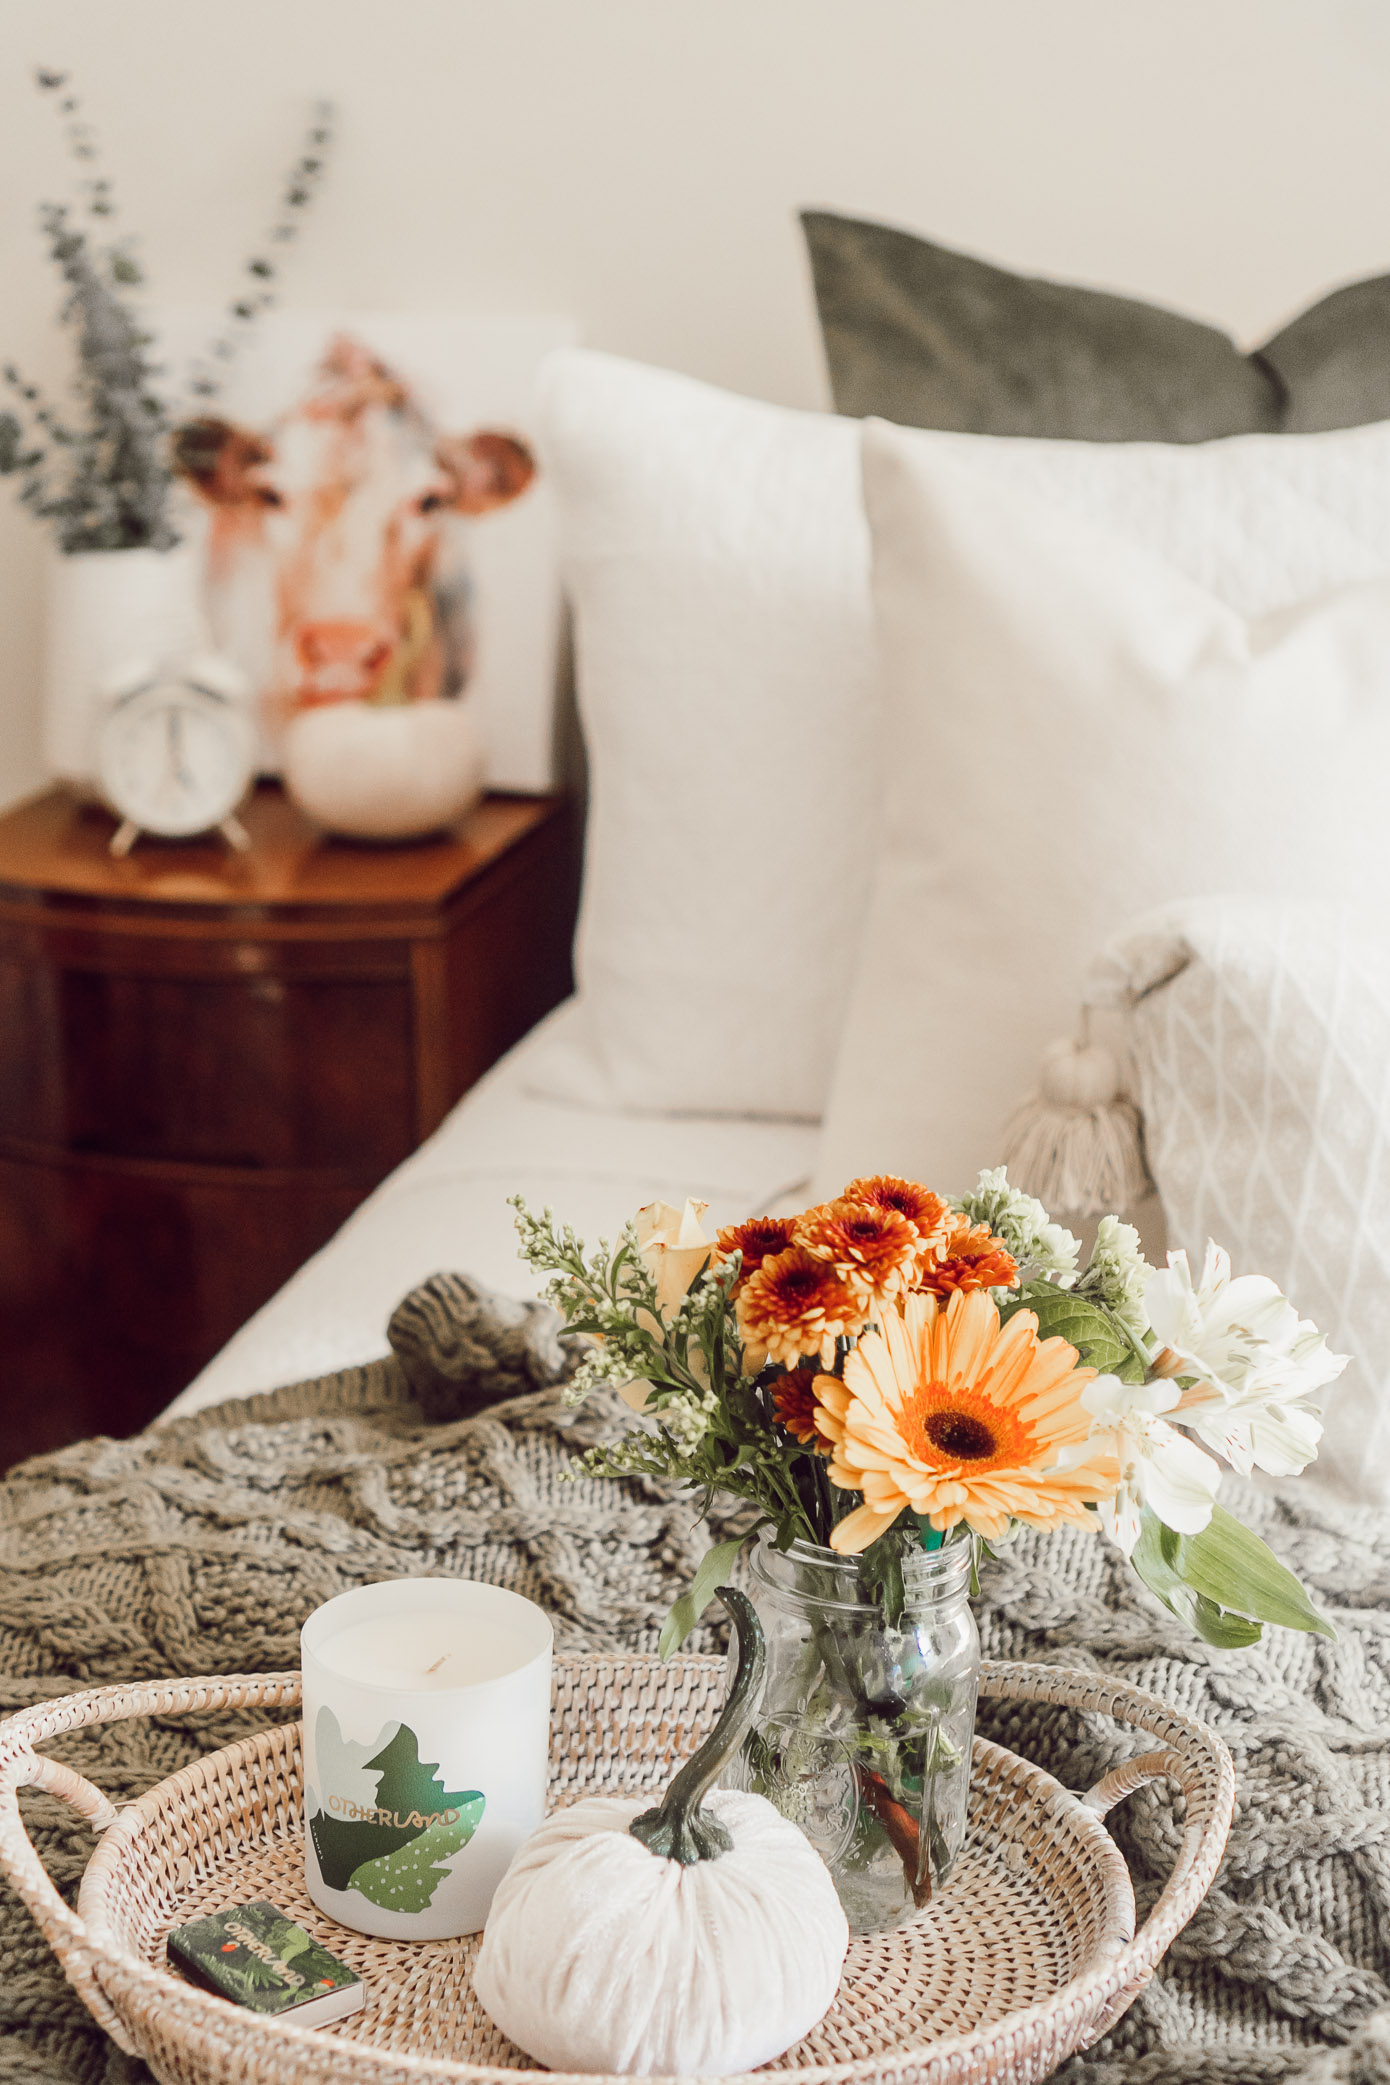 Neutral Fall Bedroom Decor | 4 Essentials For Making Your Bedroom Fall Ready - Louella Reese Blog